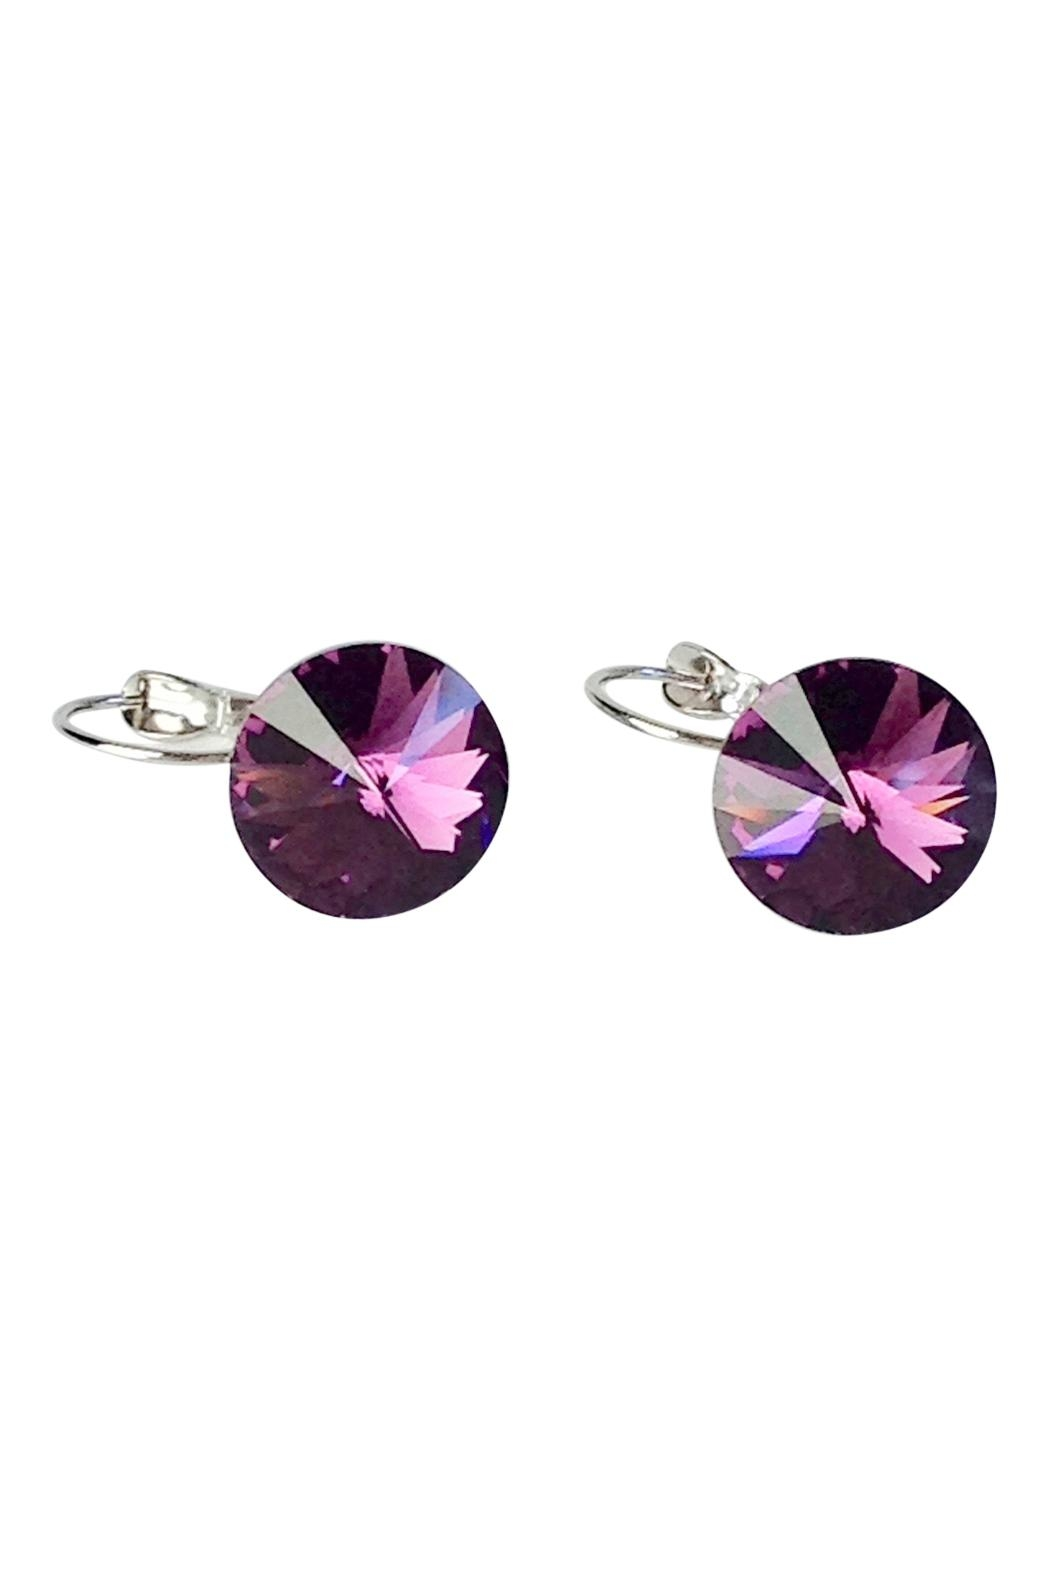 GHome2 Amethyst Swarovski Earrings from Minneapolis by Go